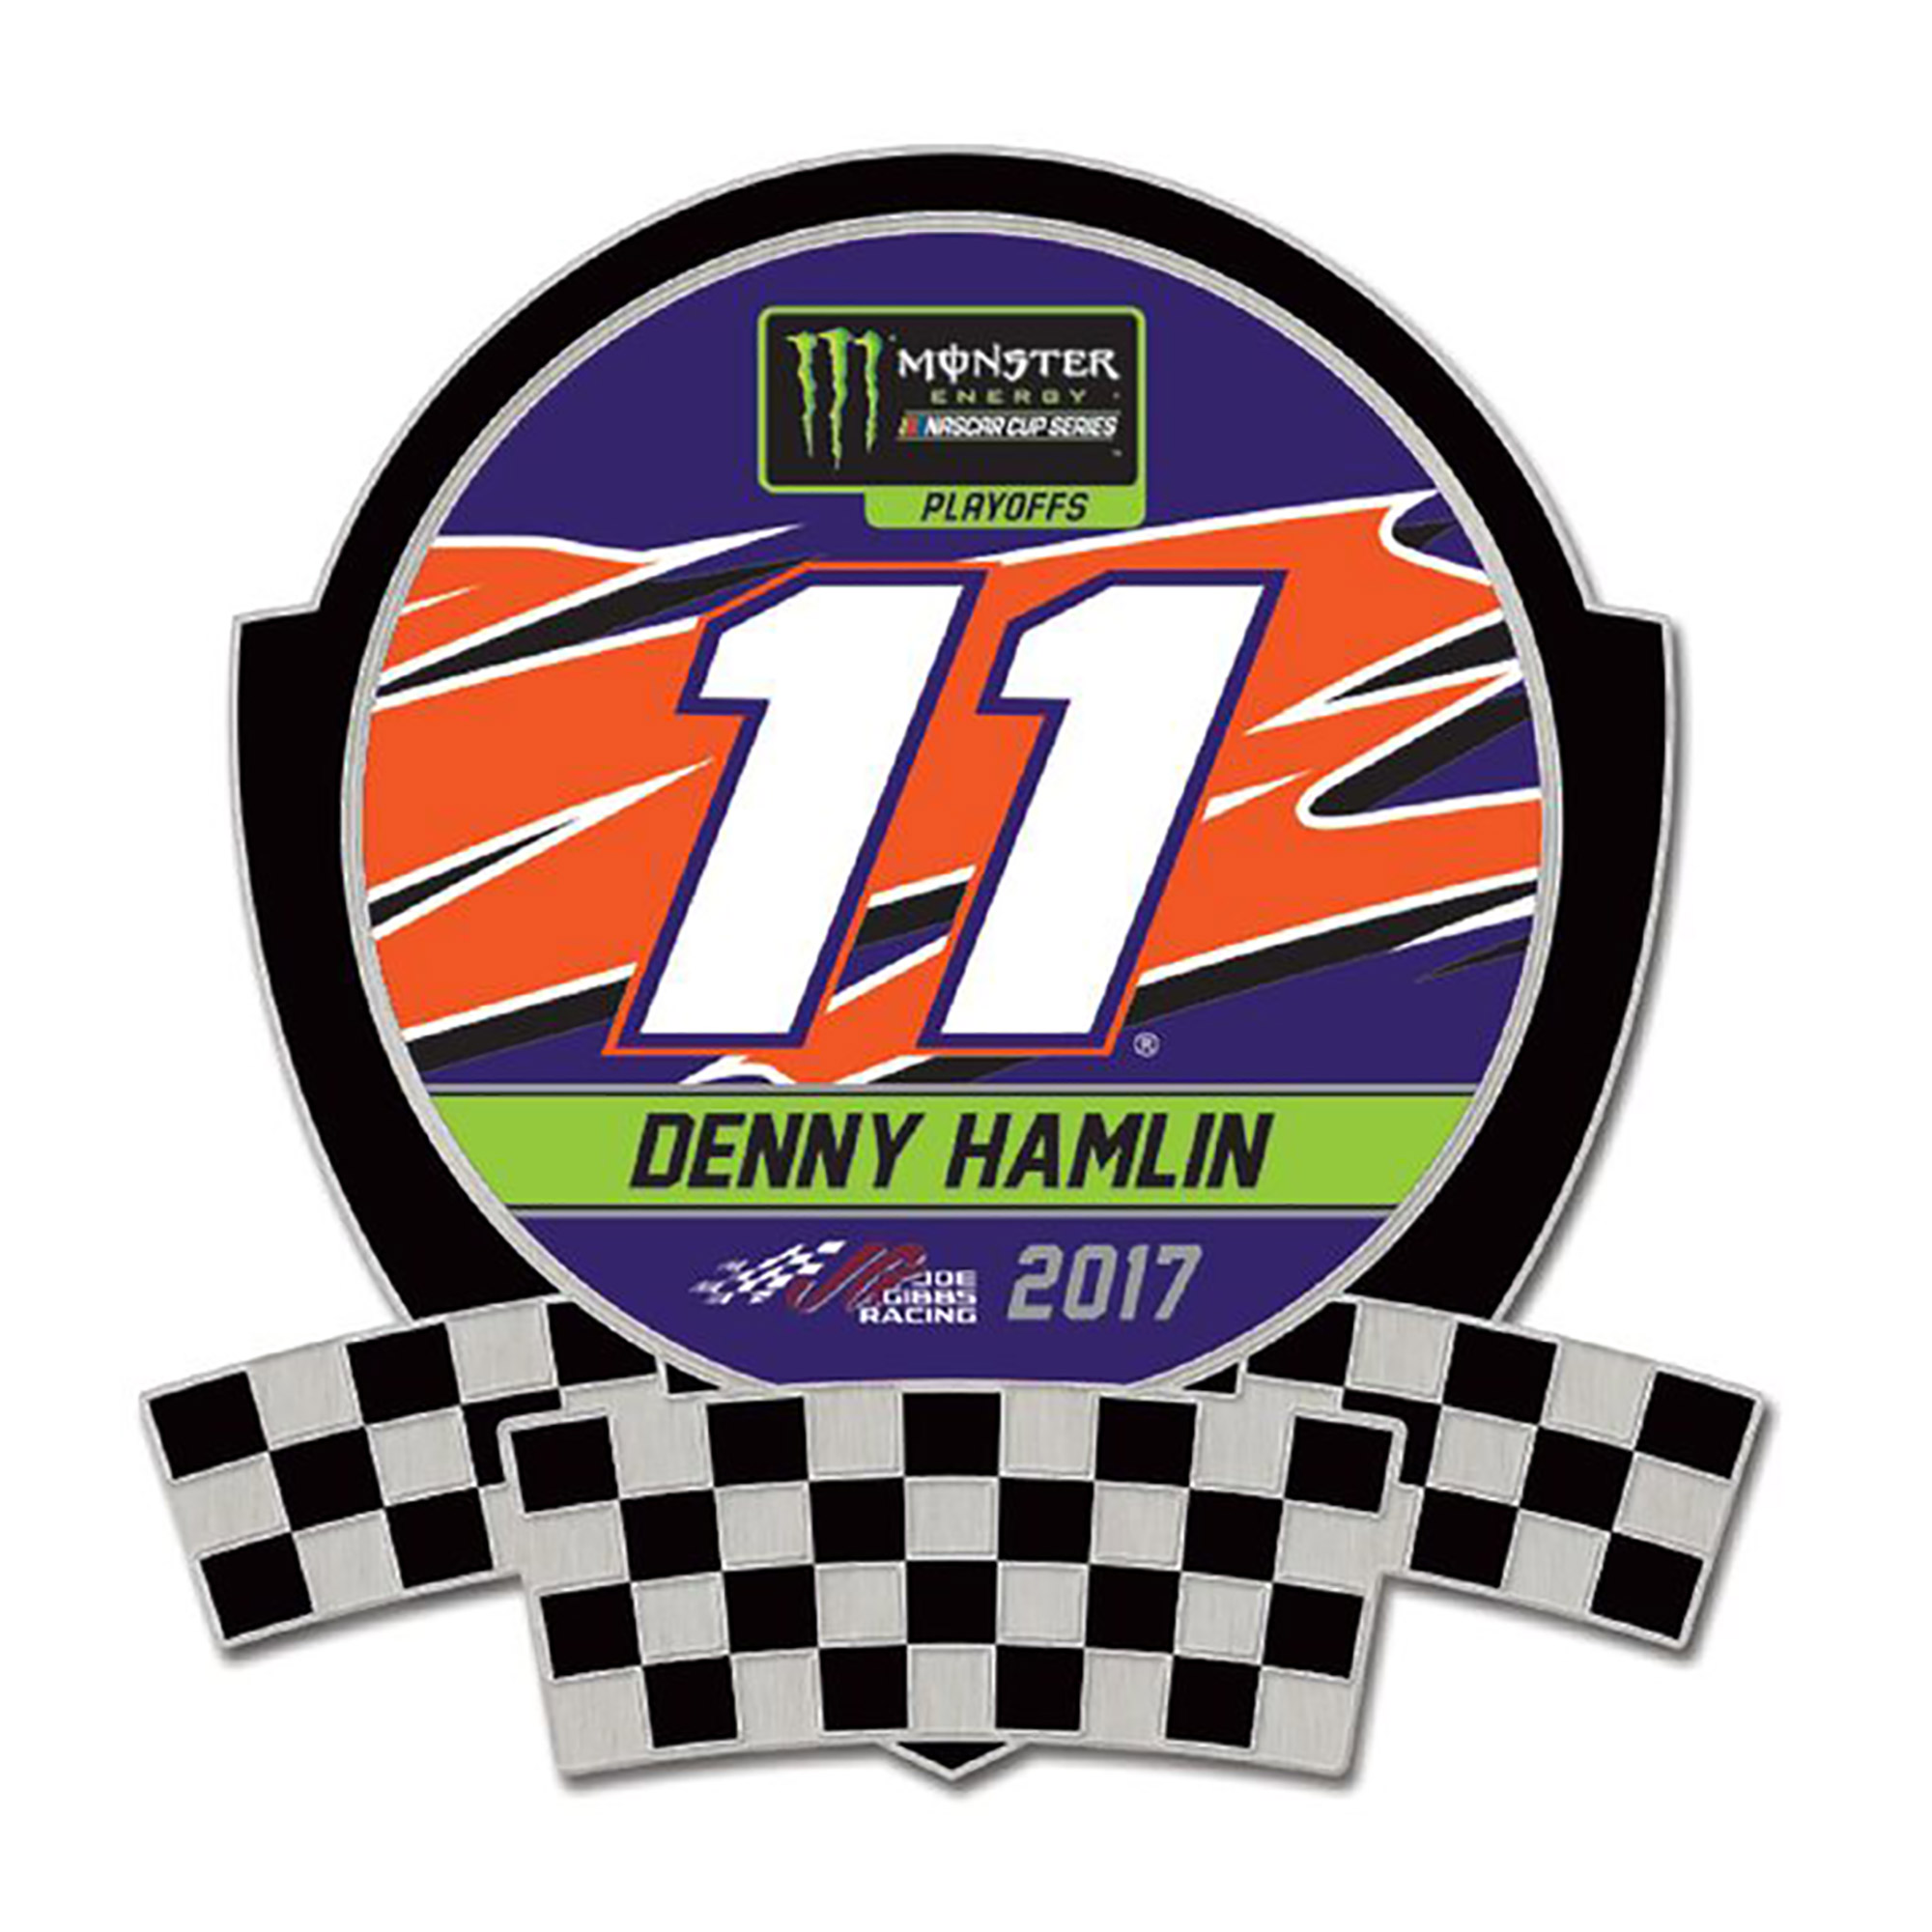 Denny Hamlin WinCraft 2017 Monster Energy NASCAR Cup Series Playoffs Collector Pin - No Size